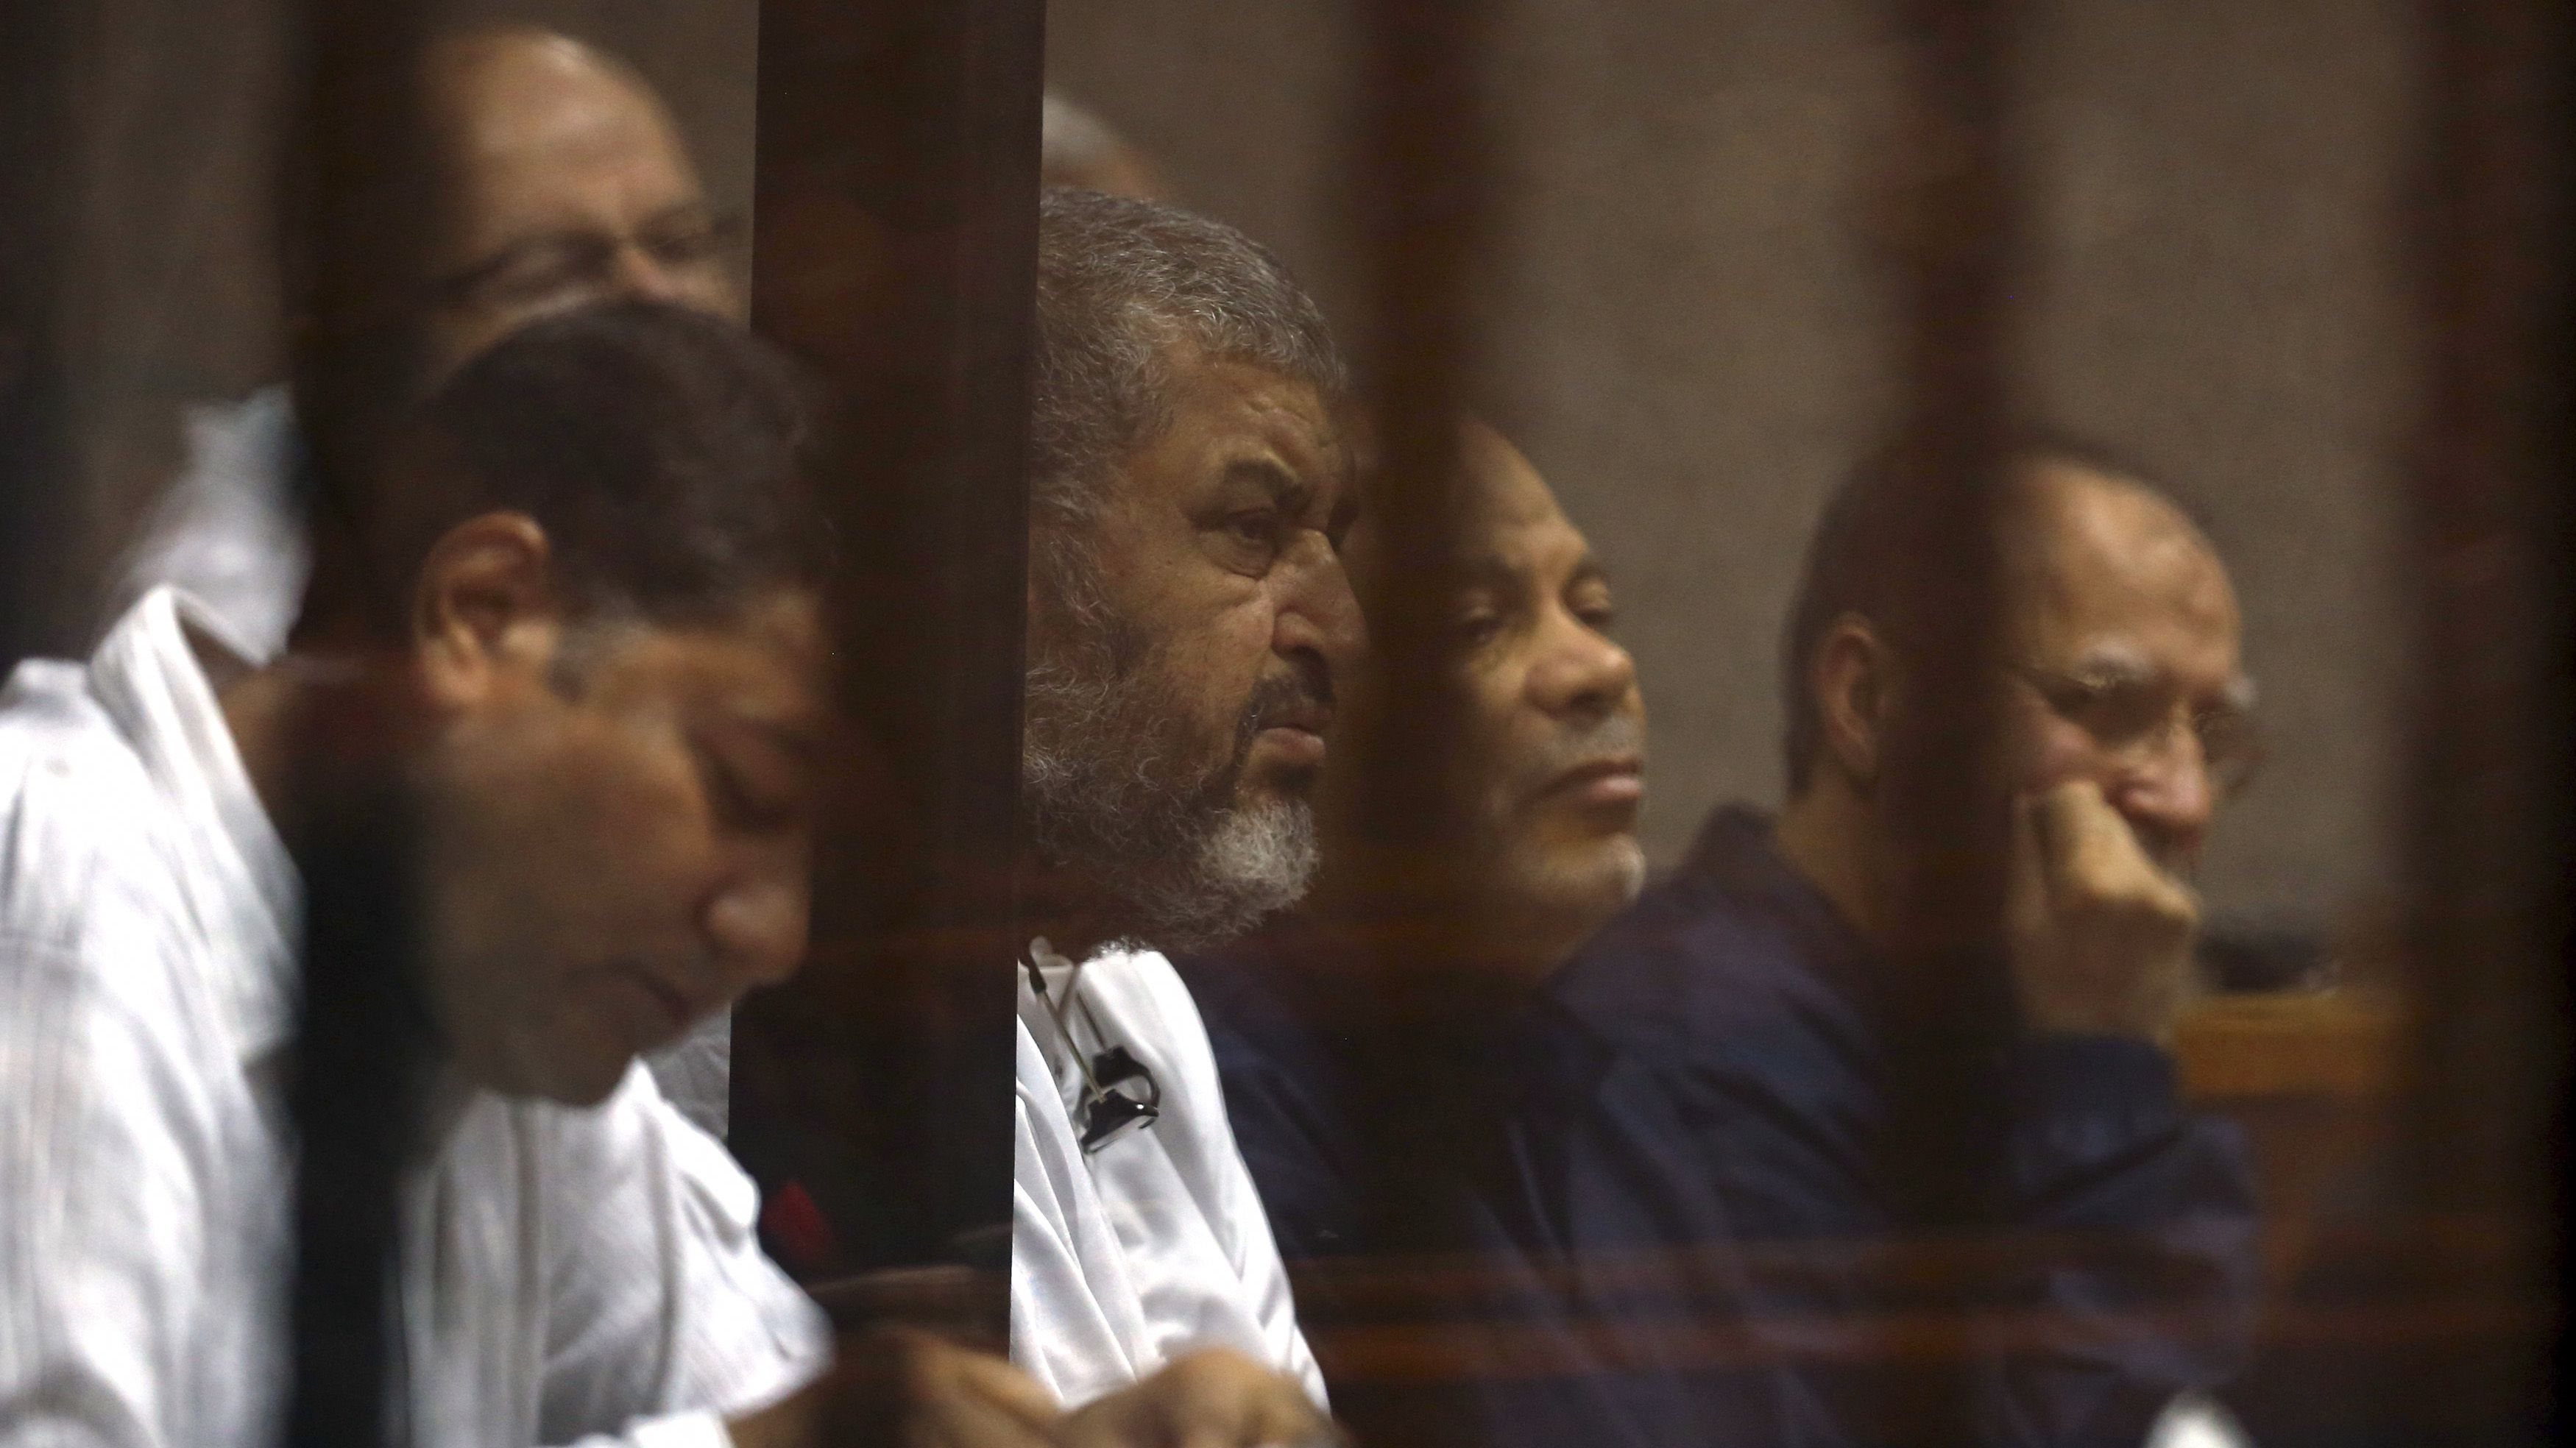 Deputy leader of Egypt's Muslim Brotherhood Khairat El-Shater (2nd L) sits behind bars with other Muslim Brotherhood members at a court in the outskirts of Cairo December 14, 2014. Egypt declared Mohamed Mursi's Muslim Brotherhood a banned terrorist organization last December and Egyptian courts have sentenced hundreds of the group's members to death in mass trials that have drawn strong international criticism. REUTERS/Asmaa Waguih (EGYPT - Tags: POLITICS CIVIL UNREST CRIME LAW) - RTR4HYPE